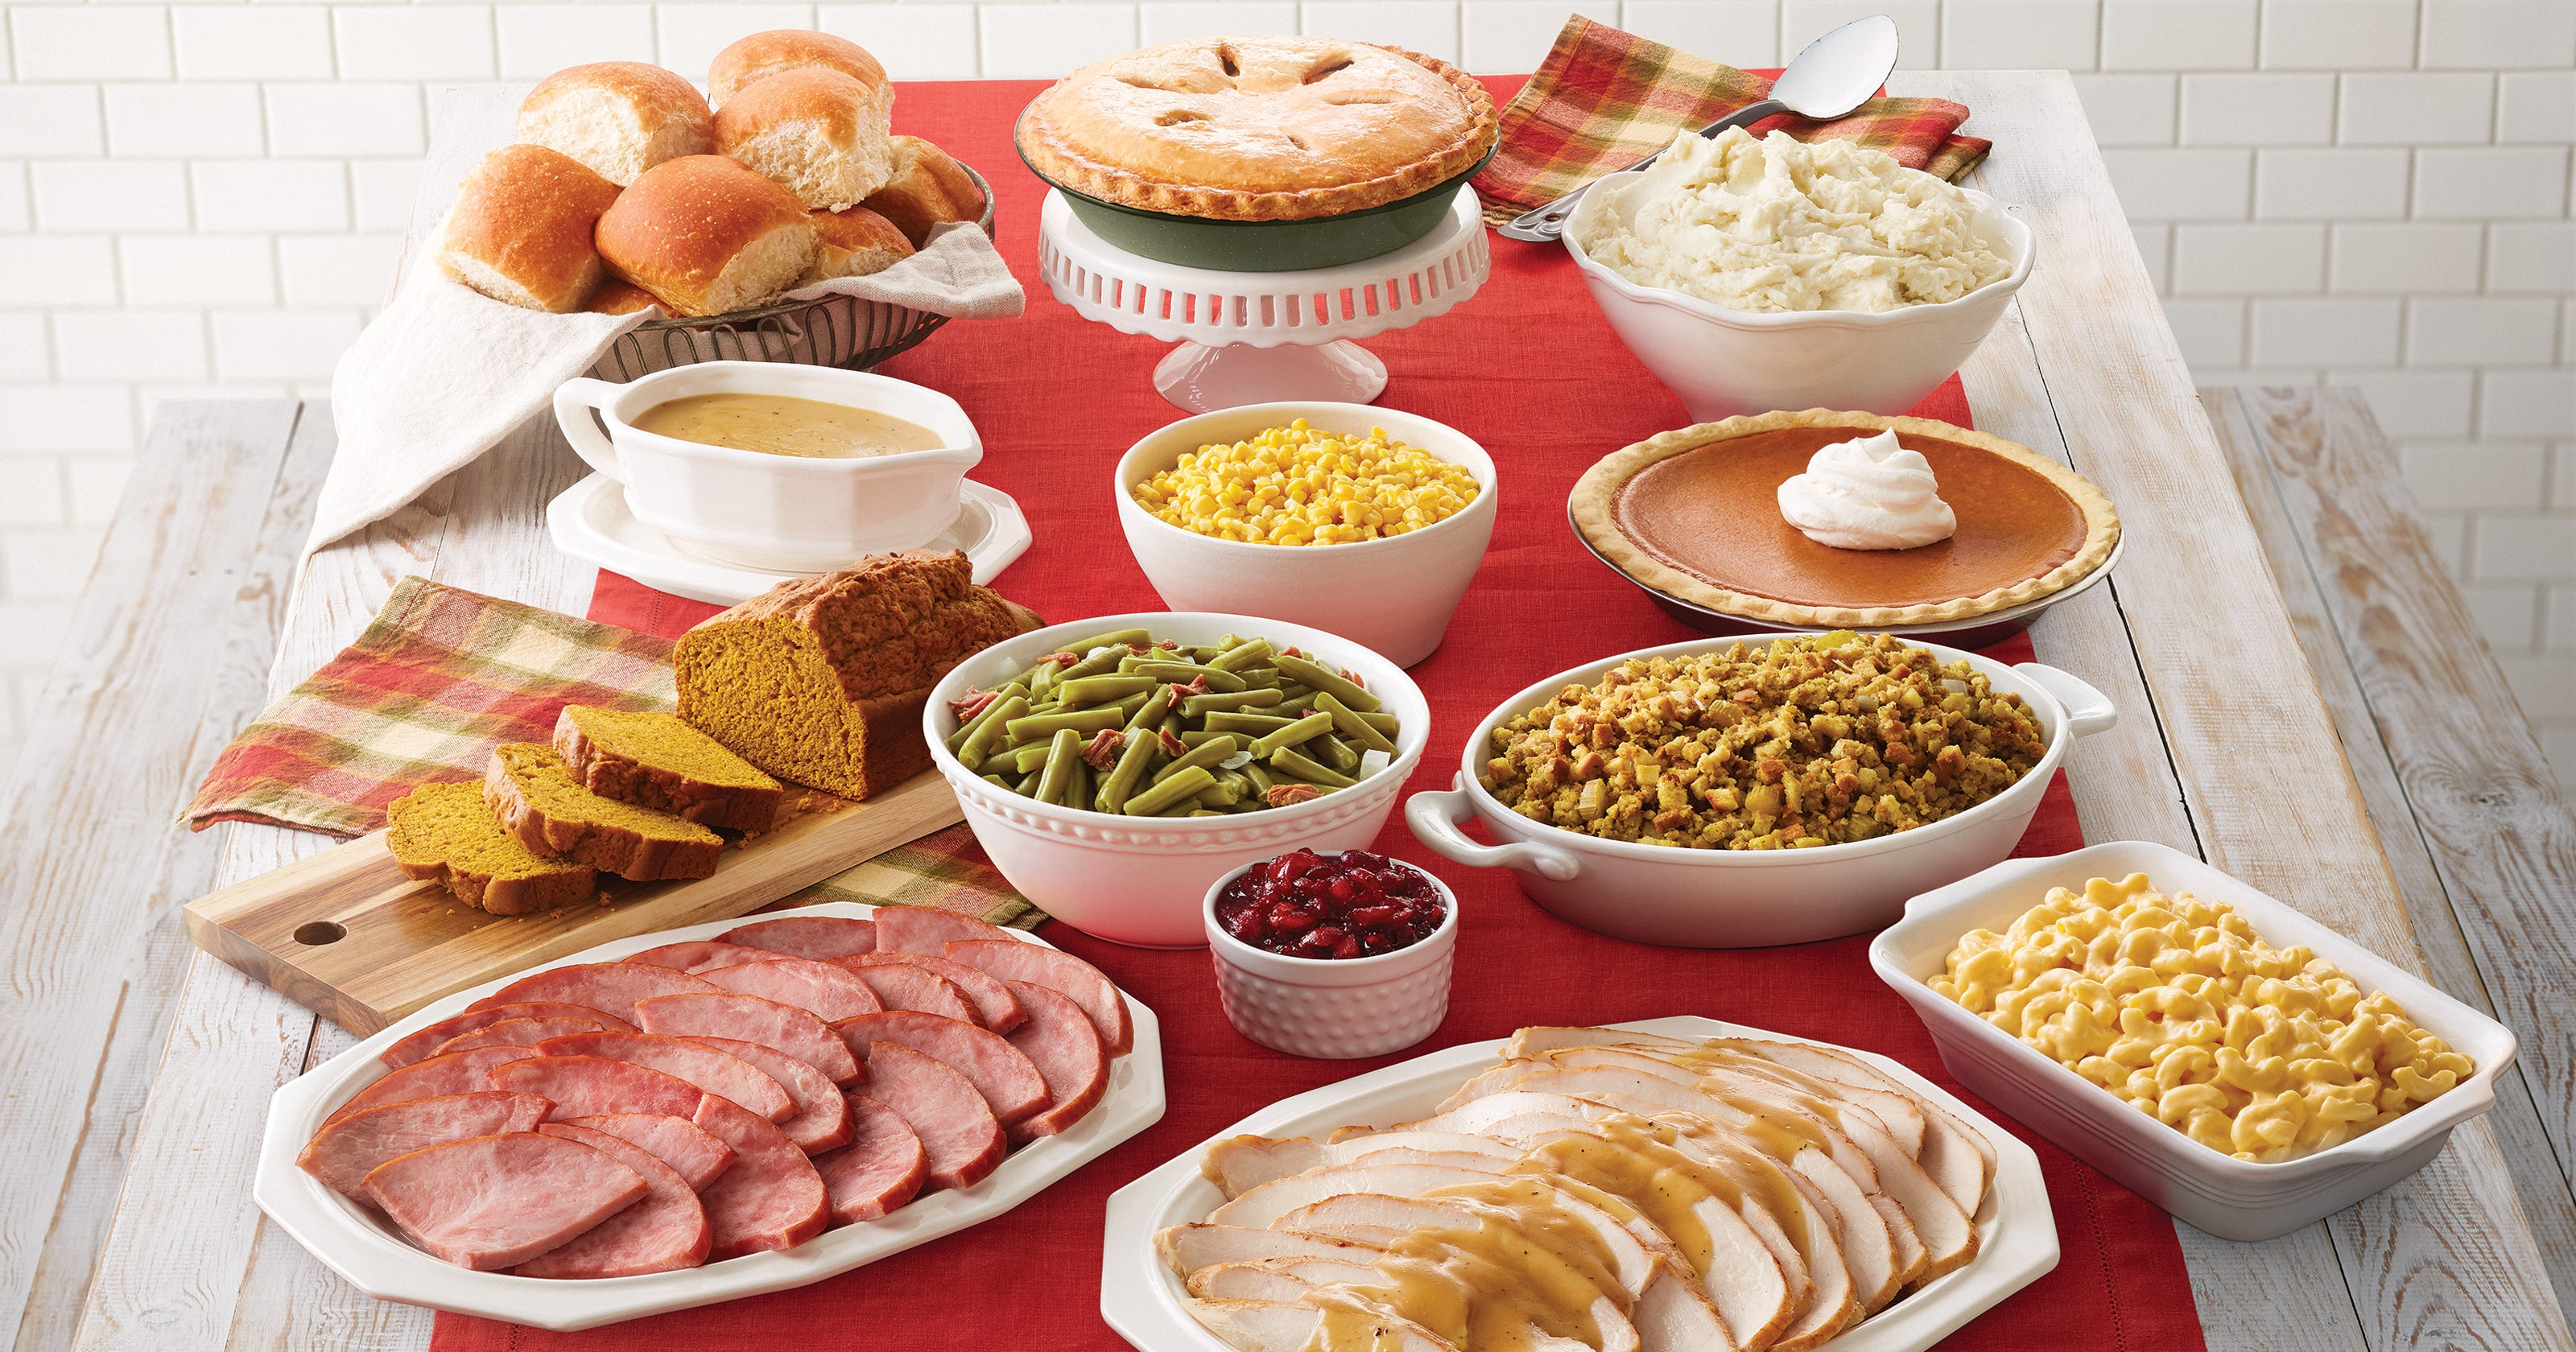 restaurants open on thanksgiving 2017 heres who is serving dinner - Is Golden Corral Open On Christmas Day 2014